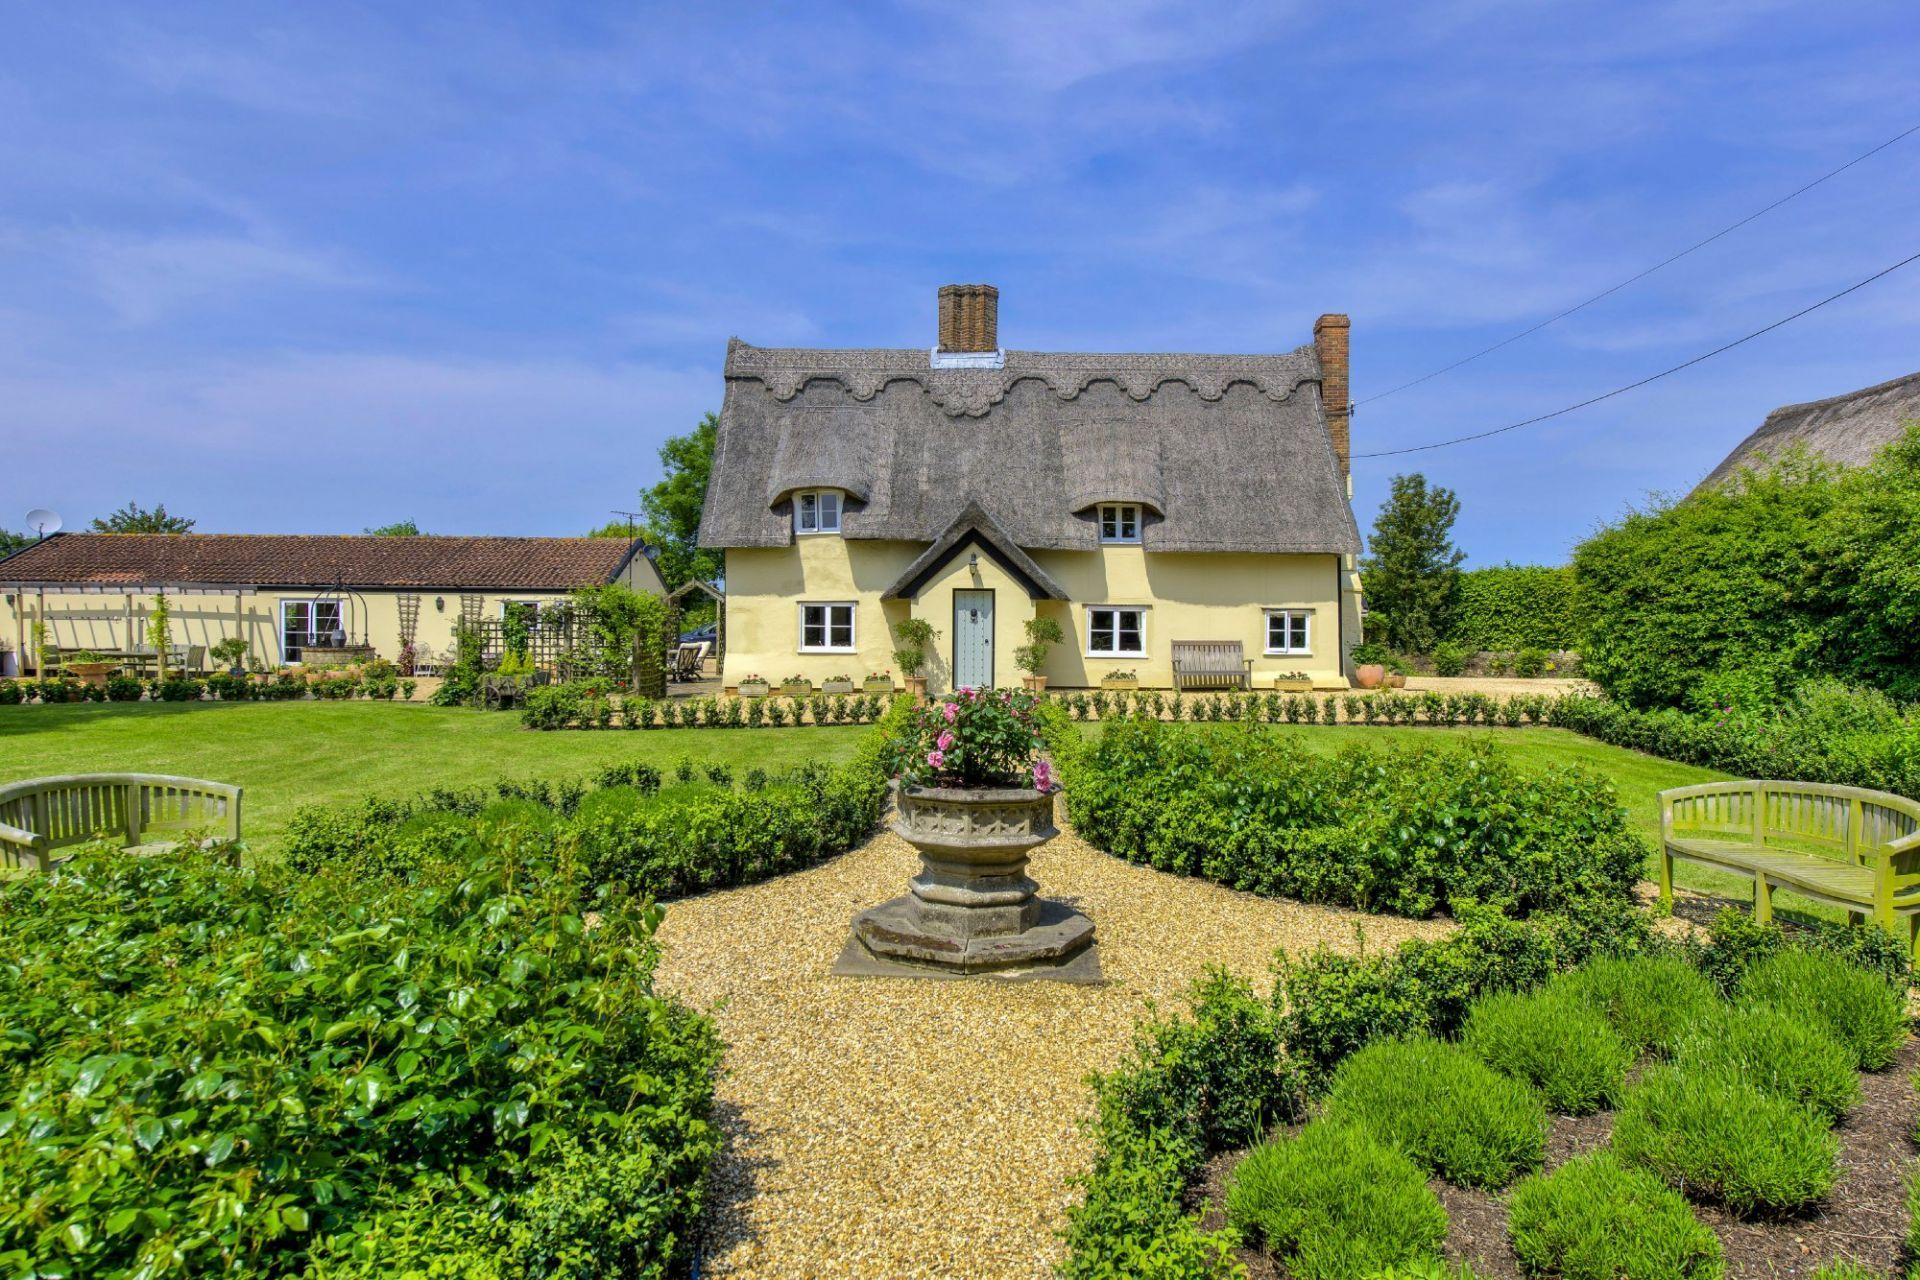 Eight bedroom main manor and a separate four bedroom gatehouse - Here Is A Charming Detached Grade Ii Listed Farmhouse With Superb Gardens The Outbuildings Located In An Idyllic Location Close To The Village Church And